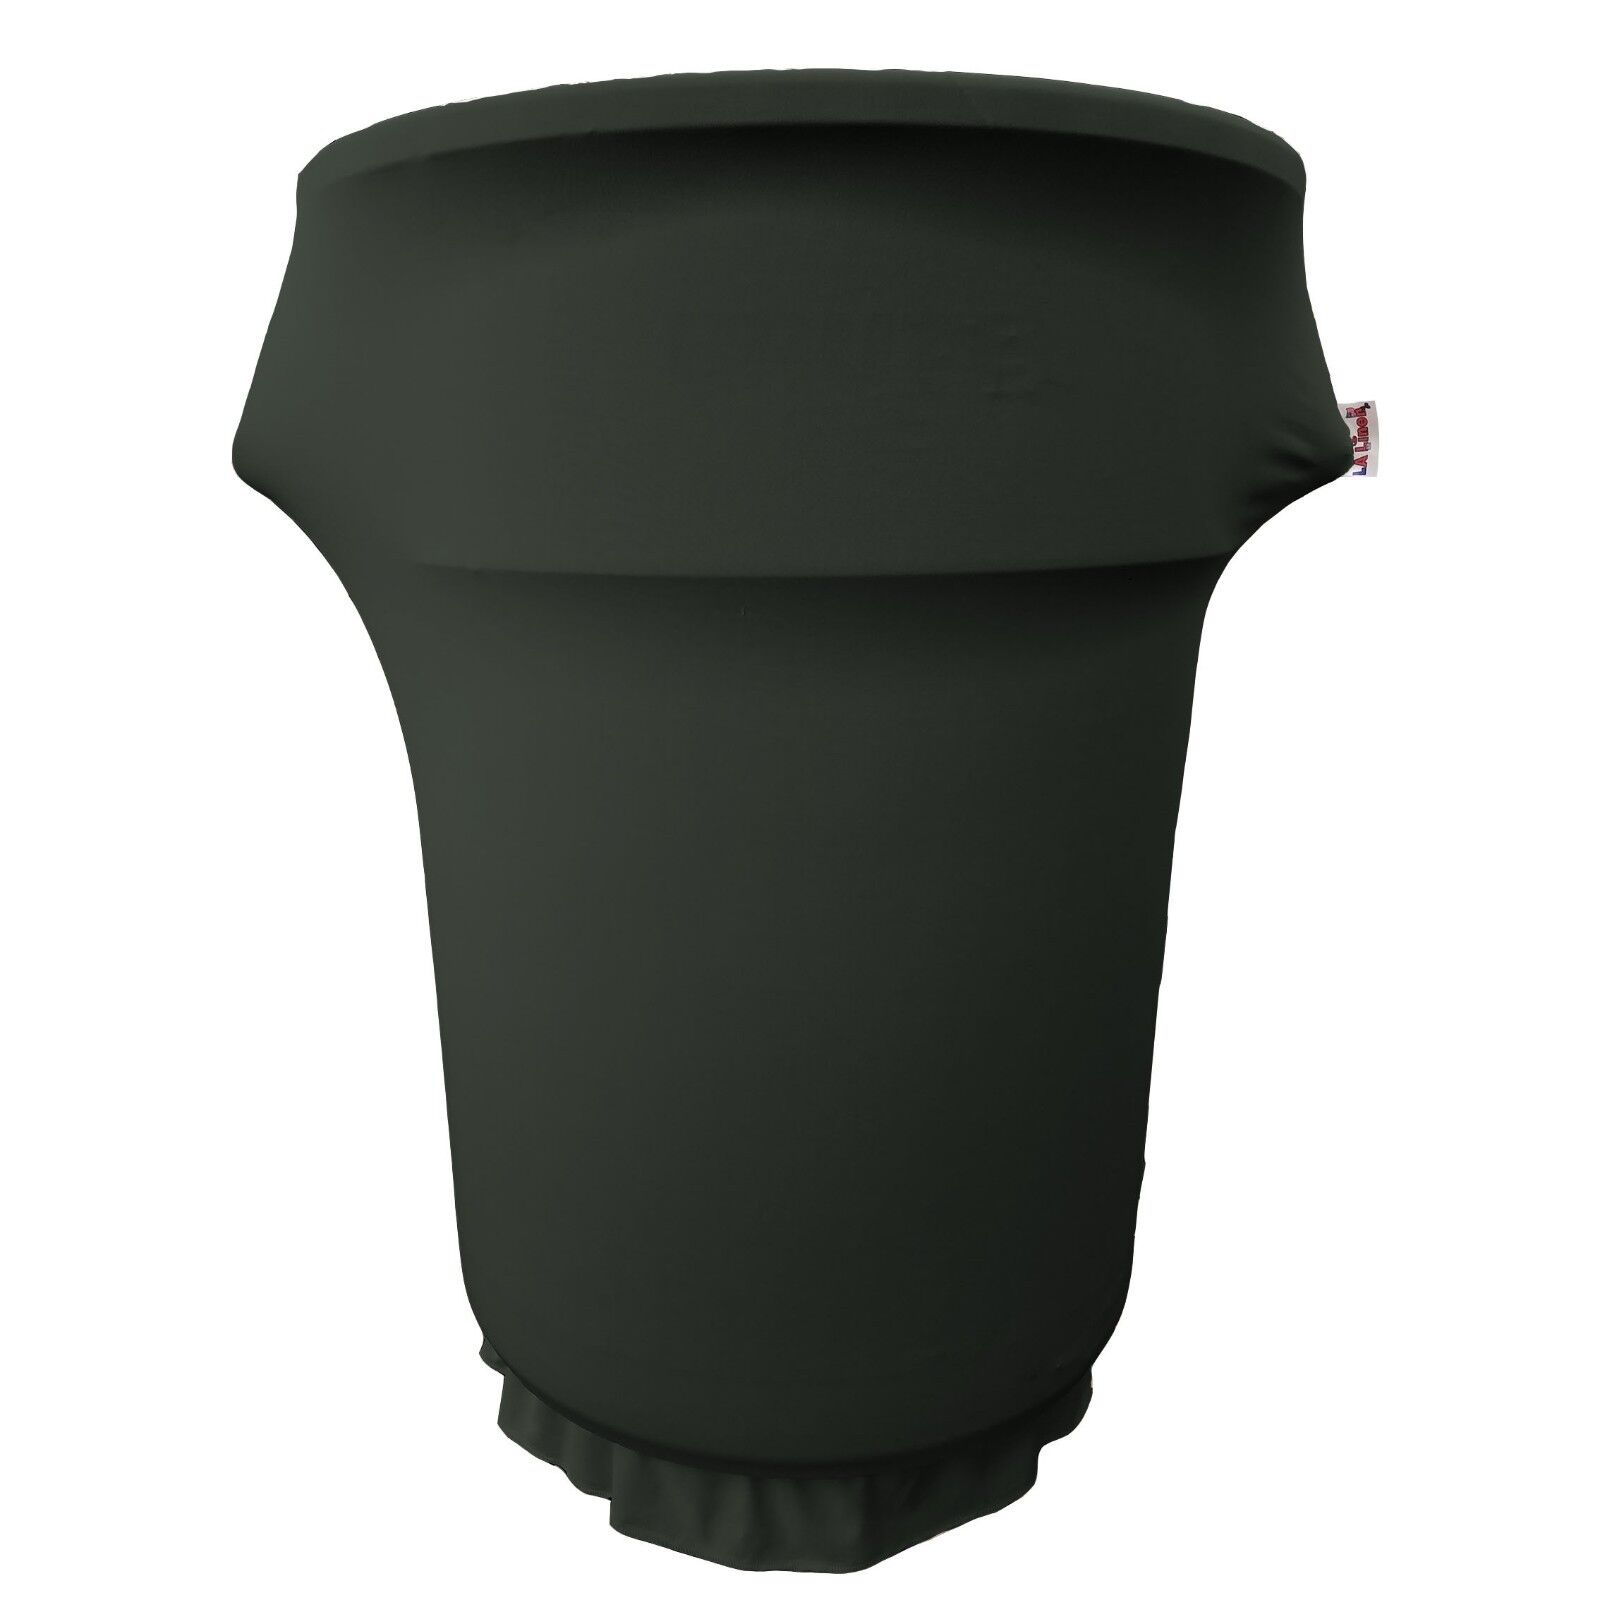 LA Linen Spandex Cover fitted for 55 Gallon Trash can on whe